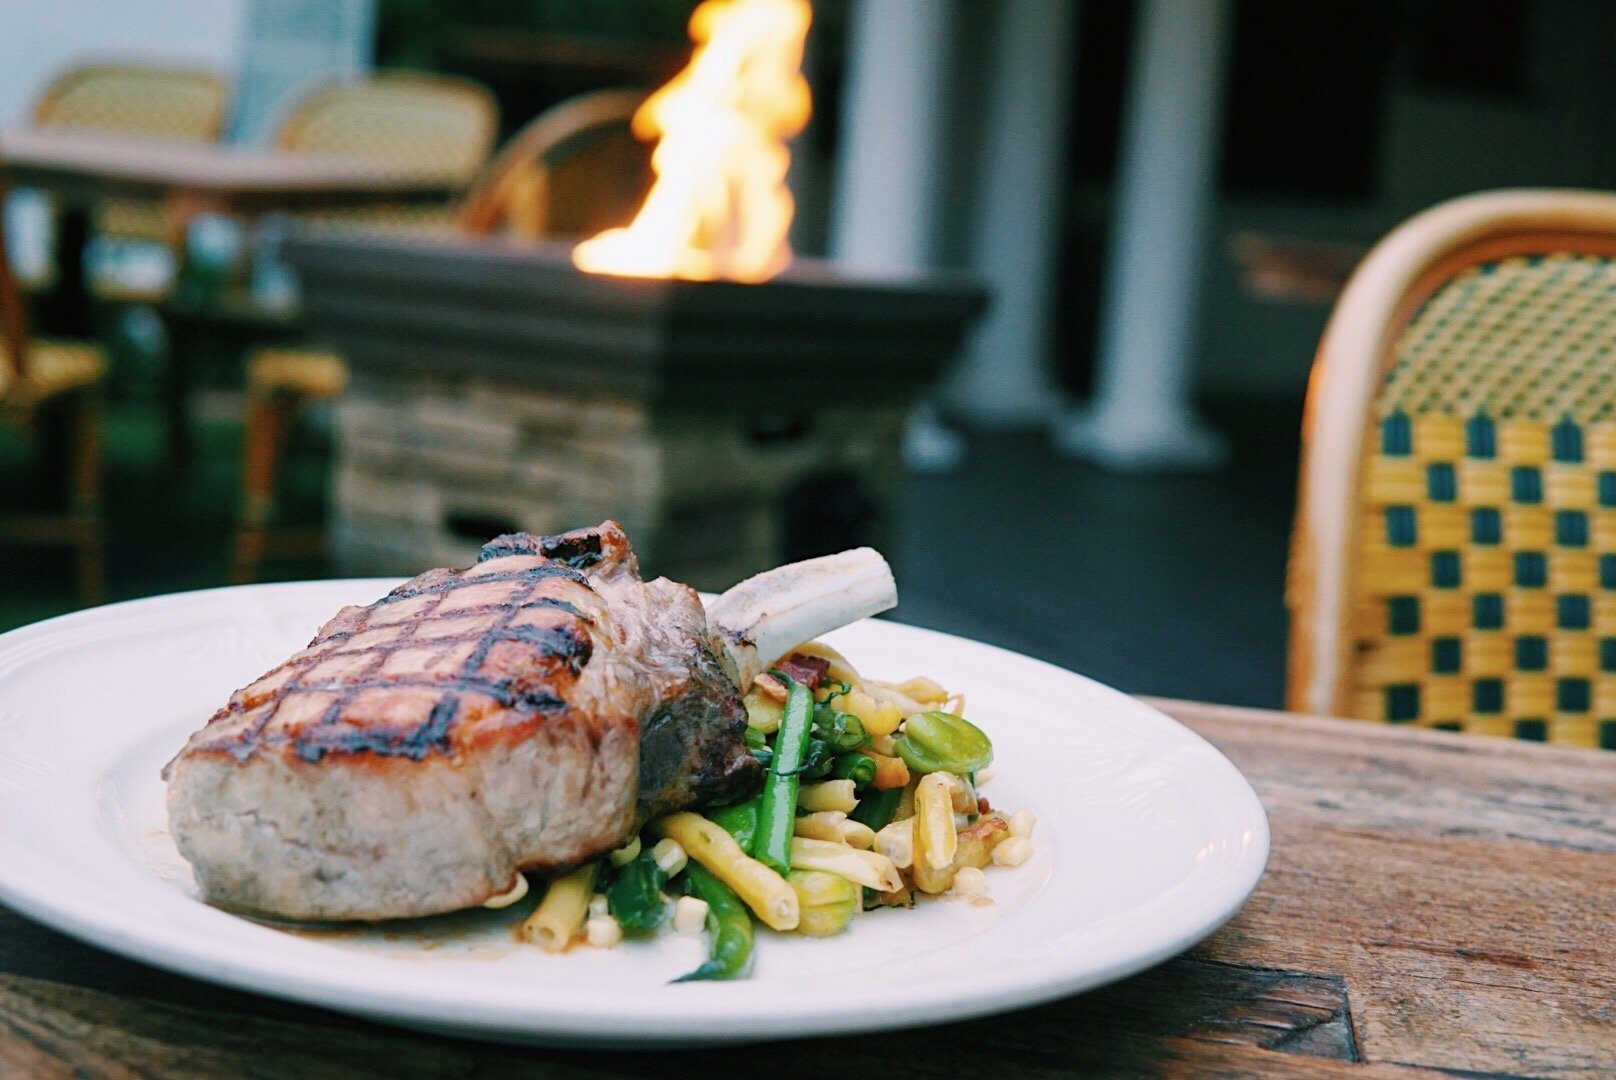 First Glance: Five Crowns Debuts a Delicious Summer Menu with their New Executive Chef